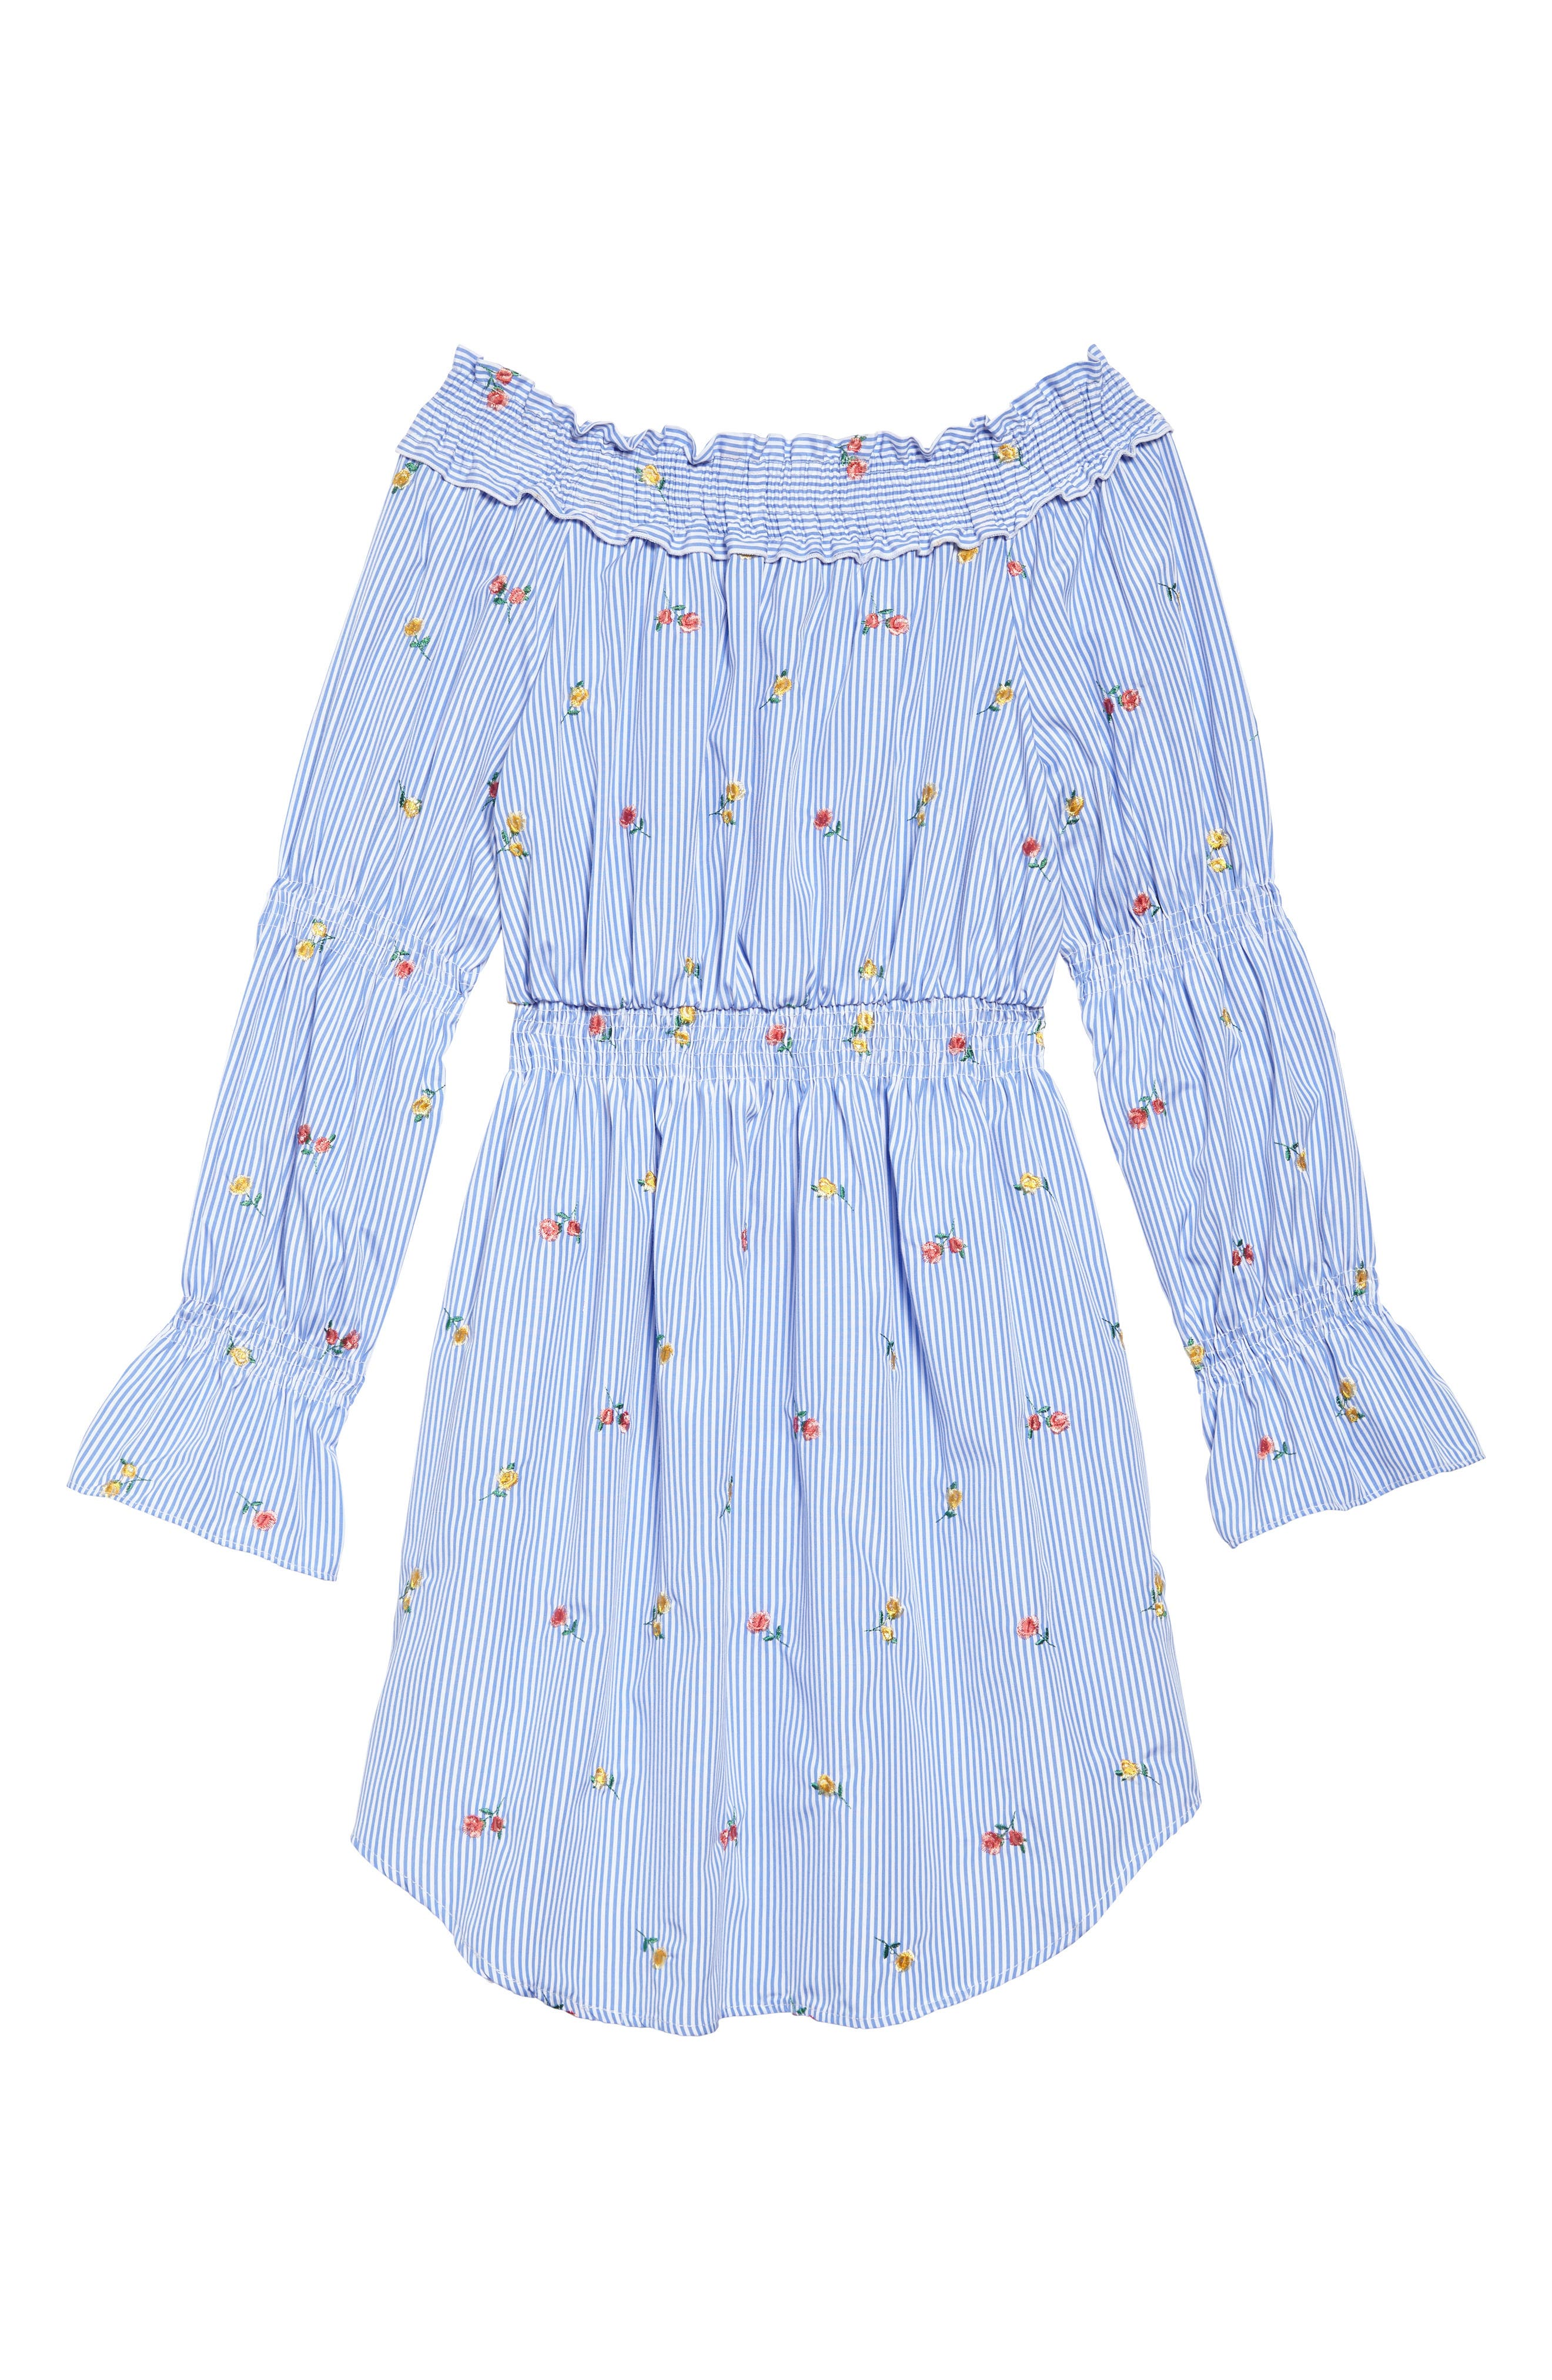 Floral Embroidery Stripe Off the Shoulder Dress,                             Main thumbnail 1, color,                             Light Blue/ White